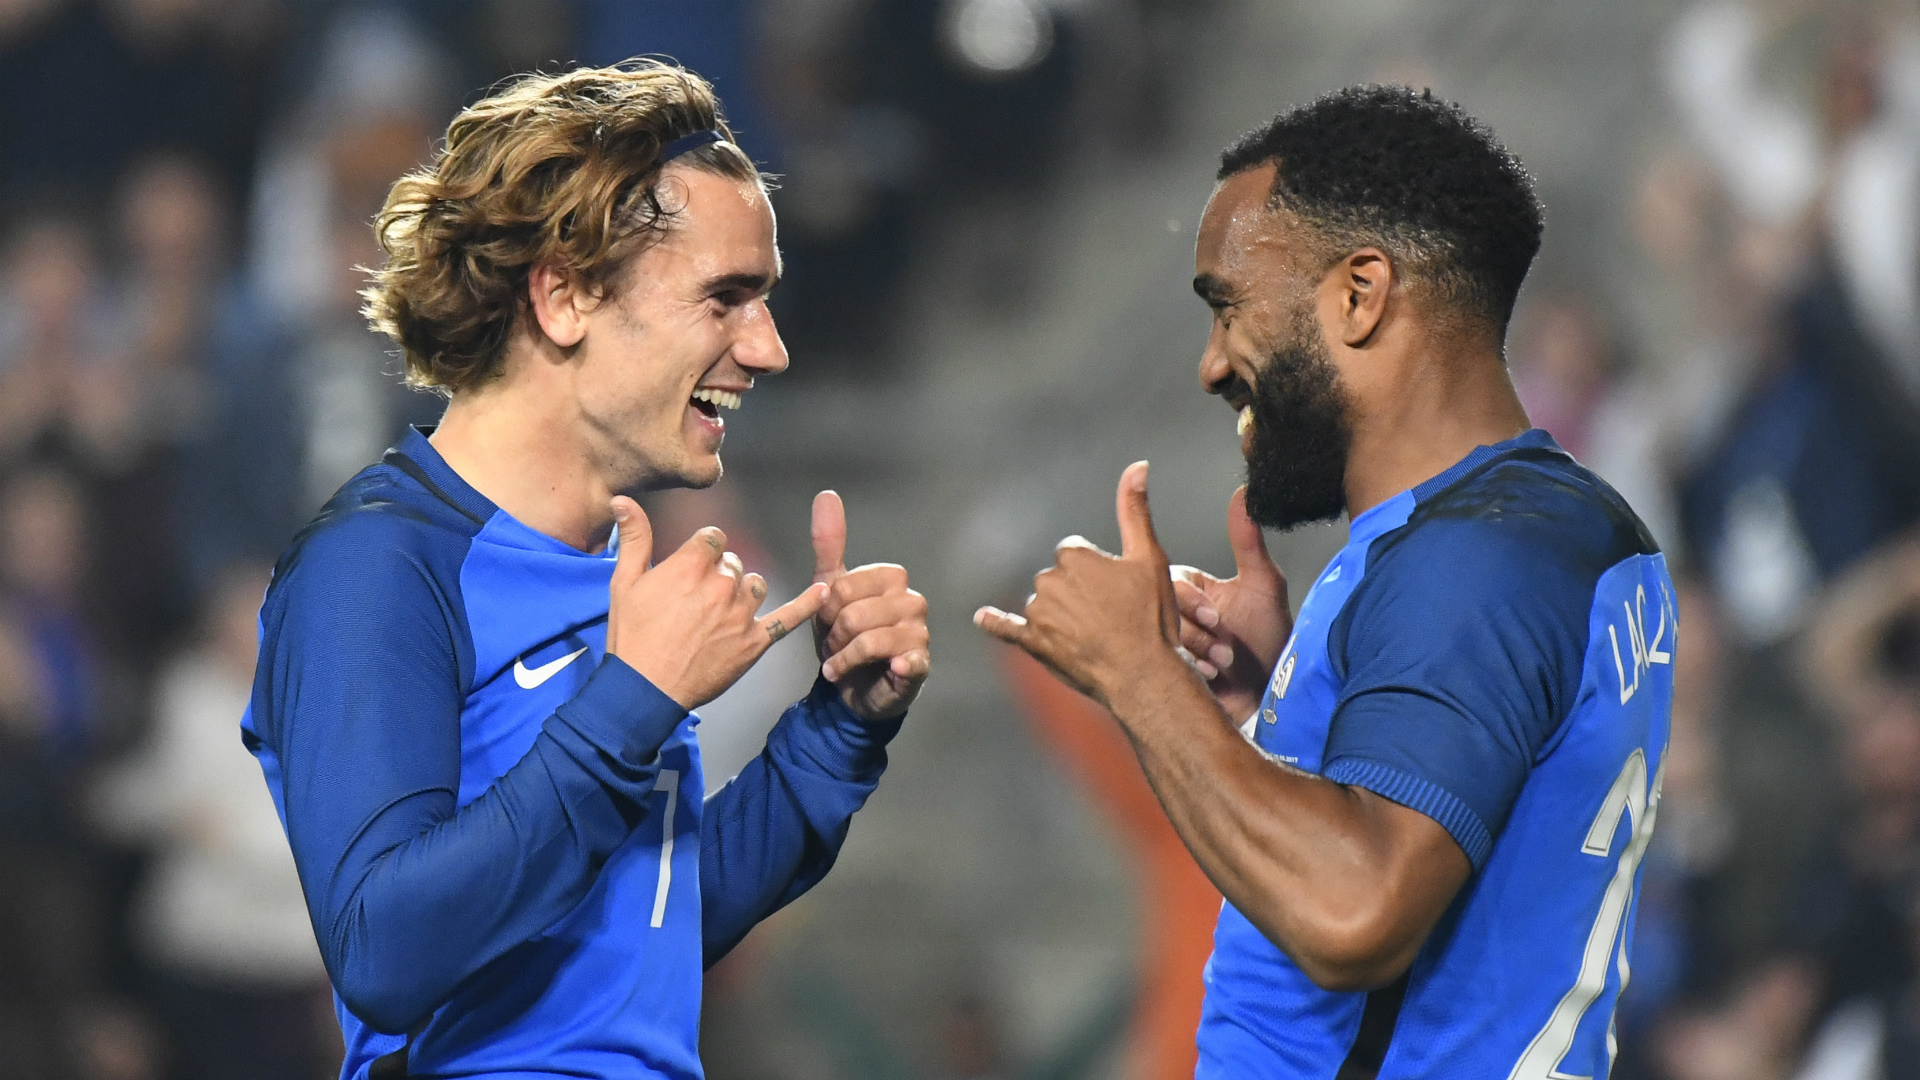 Griezmann airs Lacazette transfer wish while reflecting on Man Utd 'possibility'